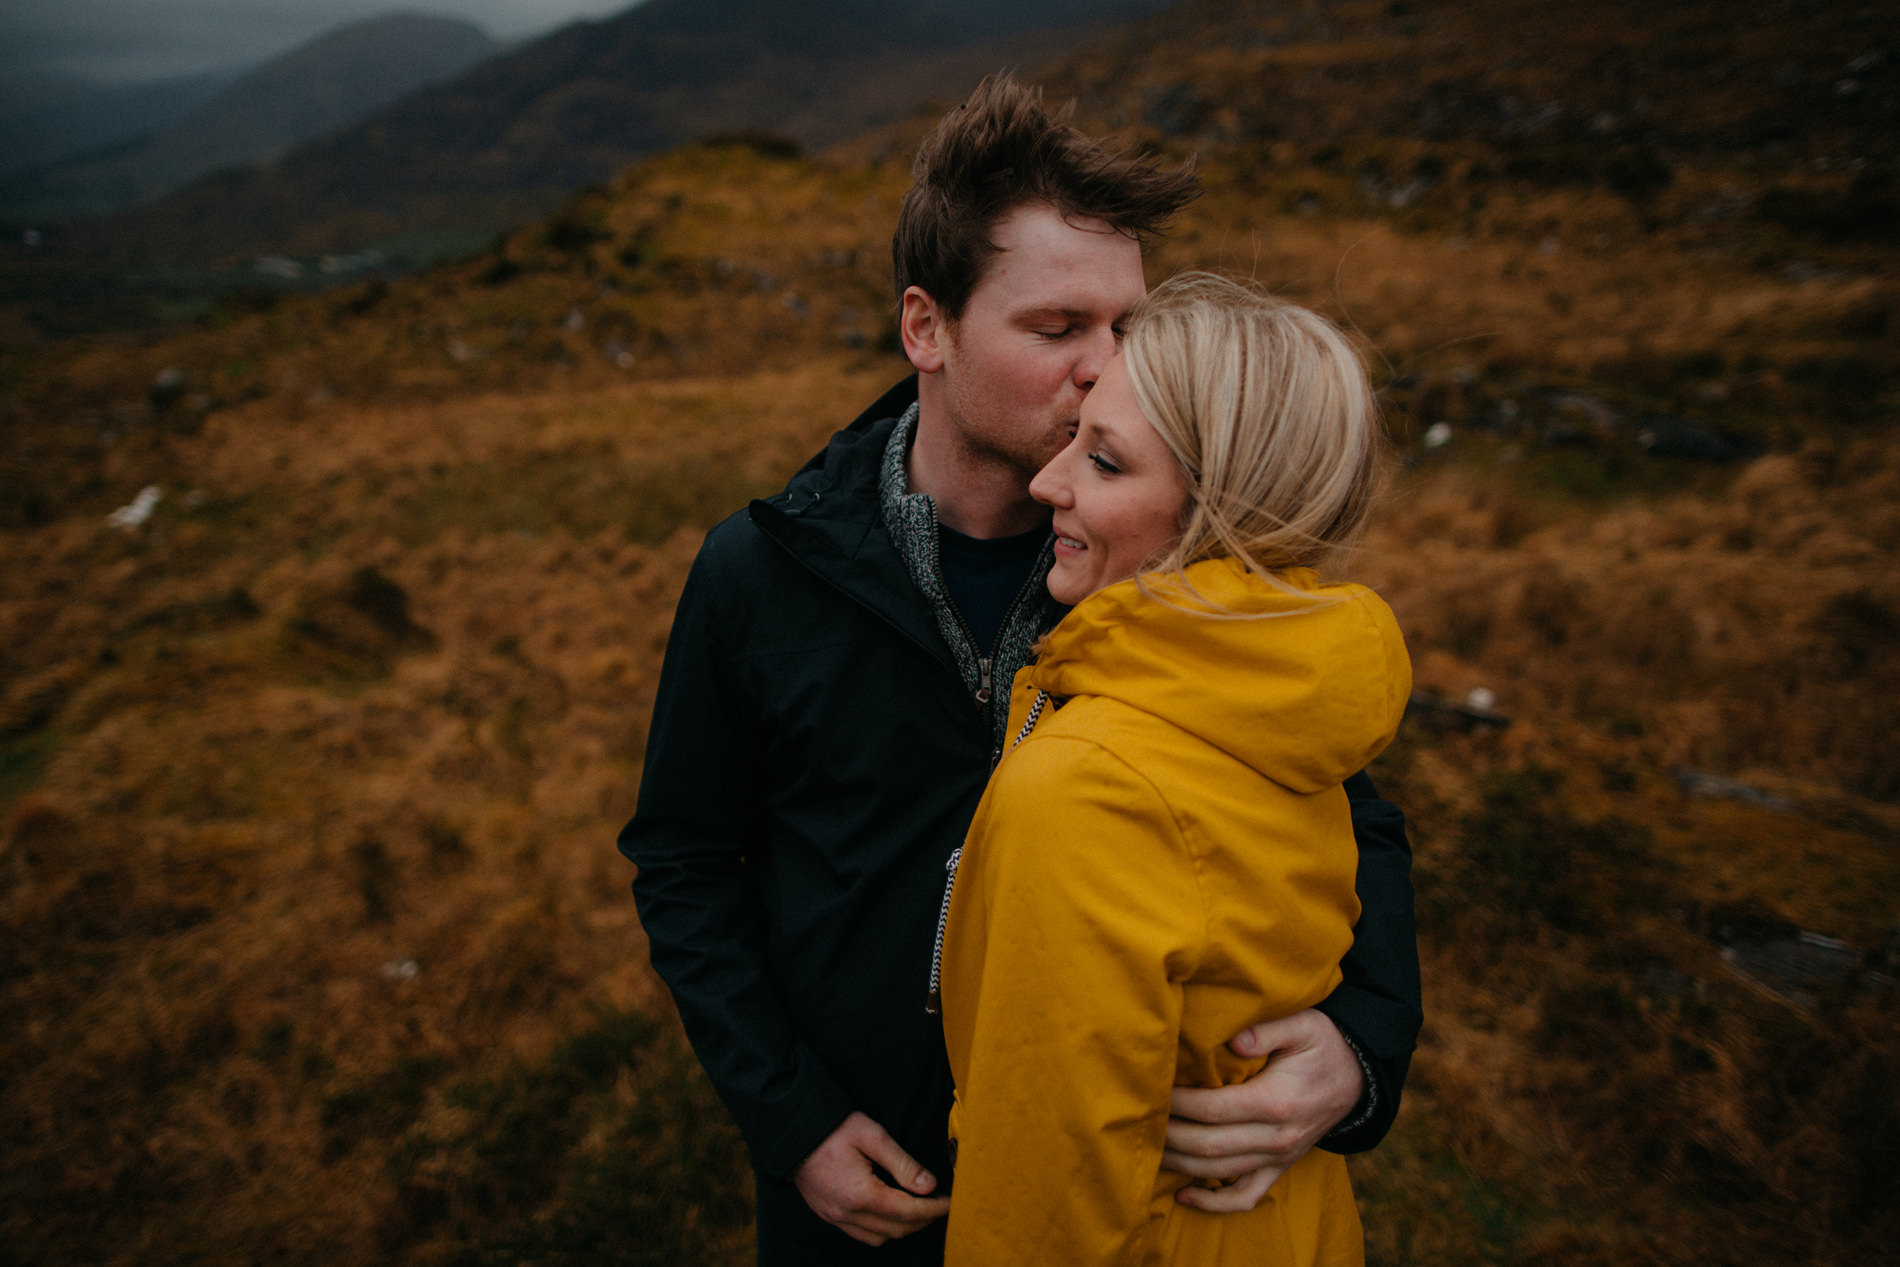 Killarney Couple Session